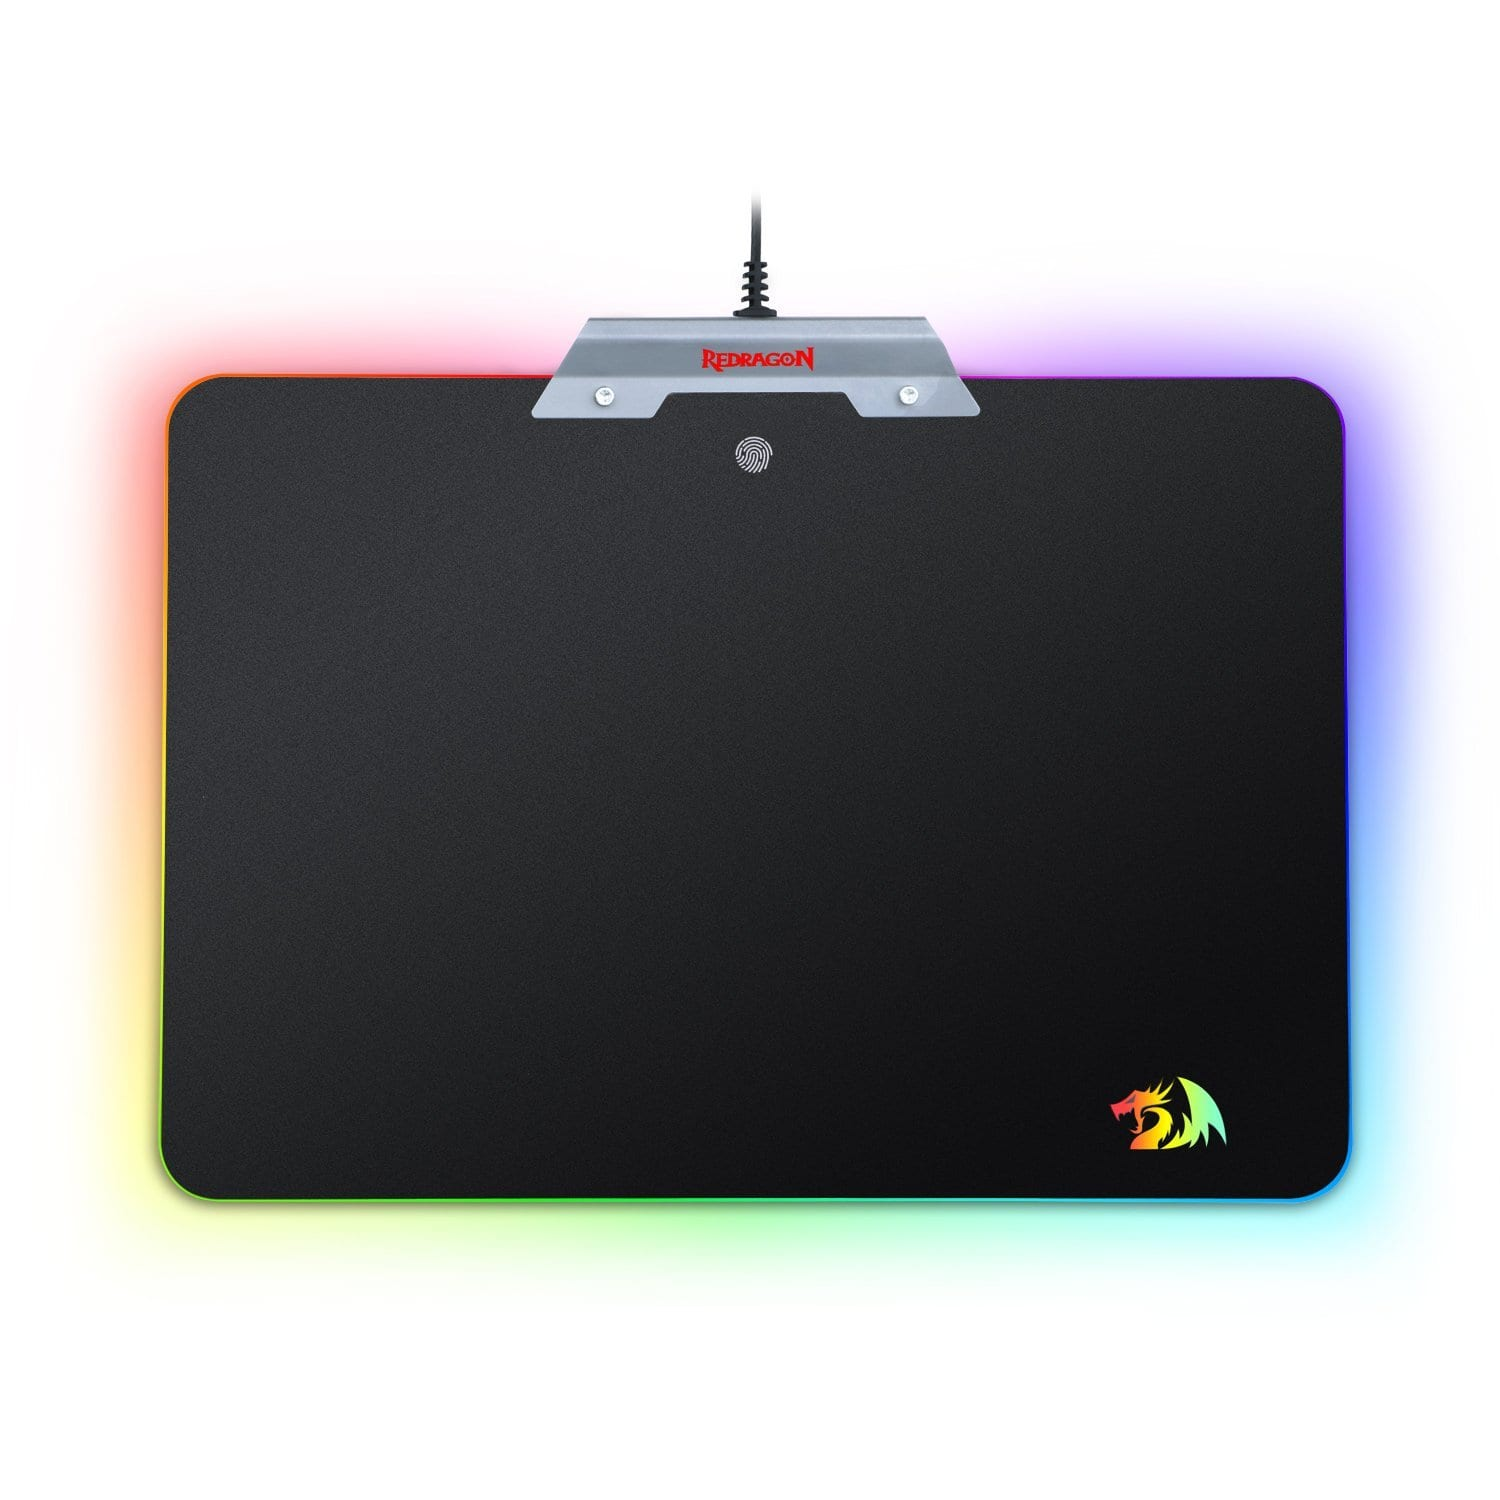 Top 8 Best RGB Gaming Mouse Pad Reviews in 2018